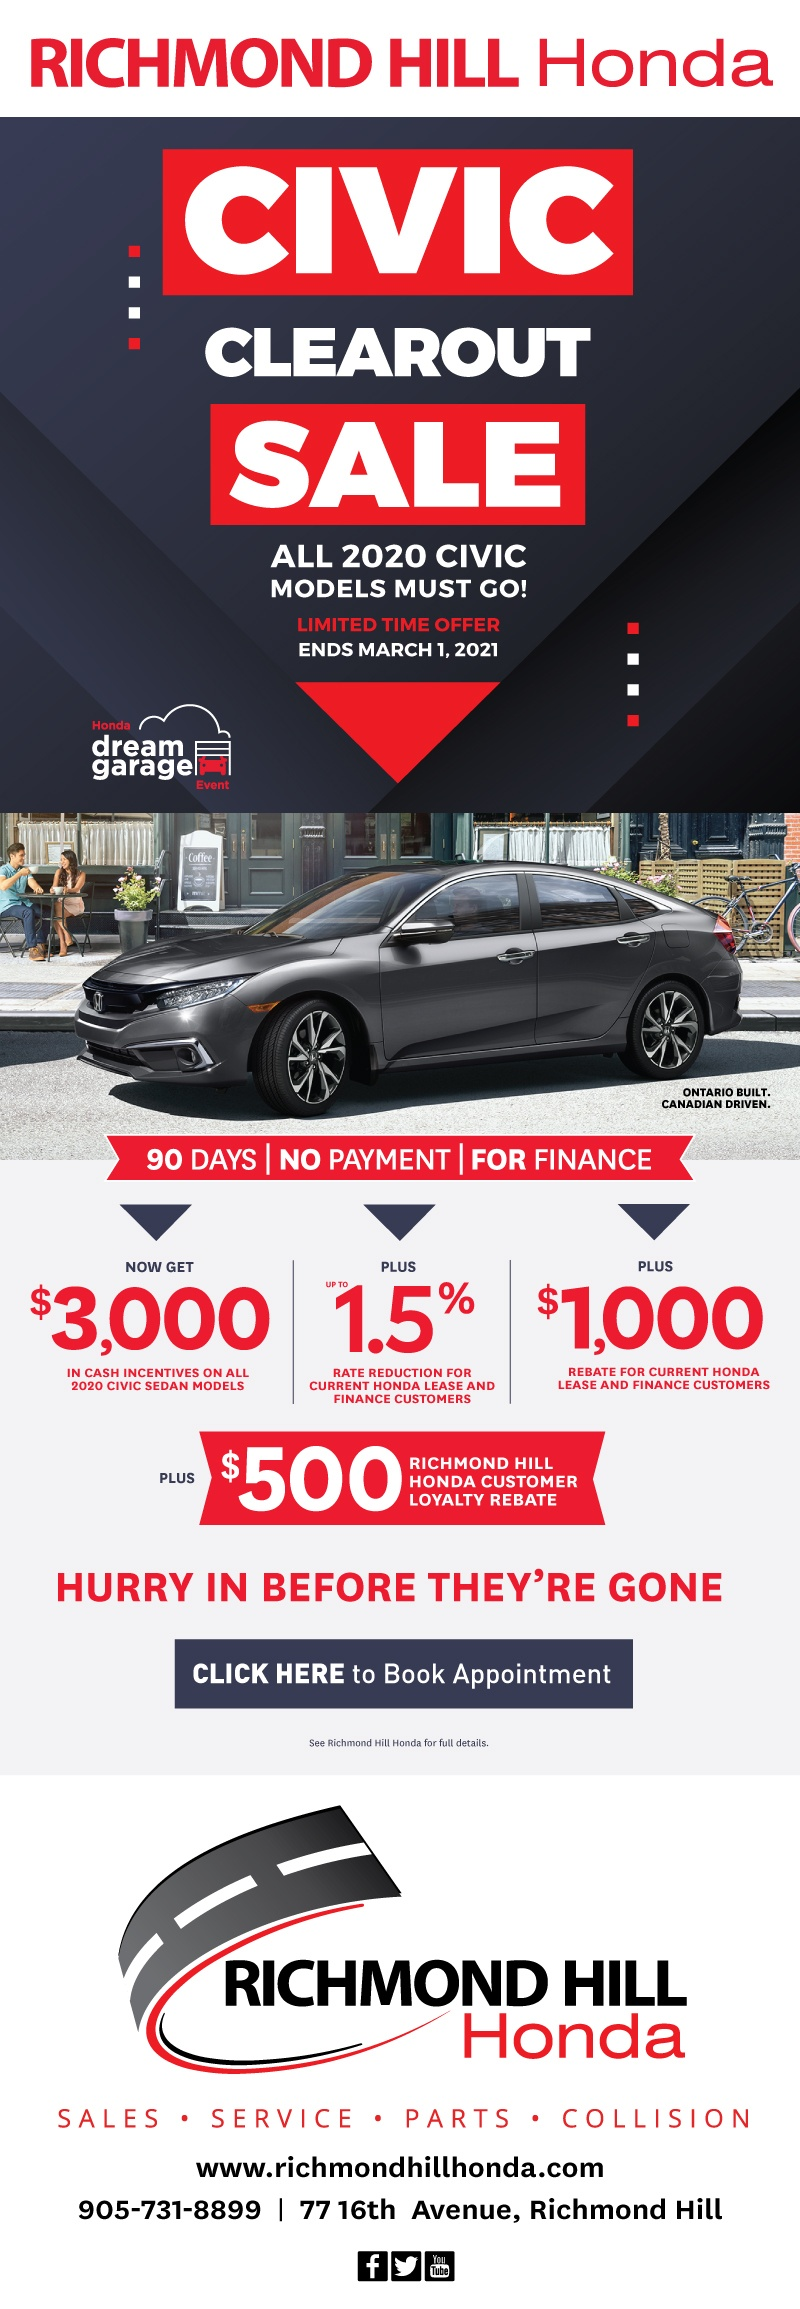 2020 Honda Civic Exterior at Richmond Hill Honda in Toronto and the GTA